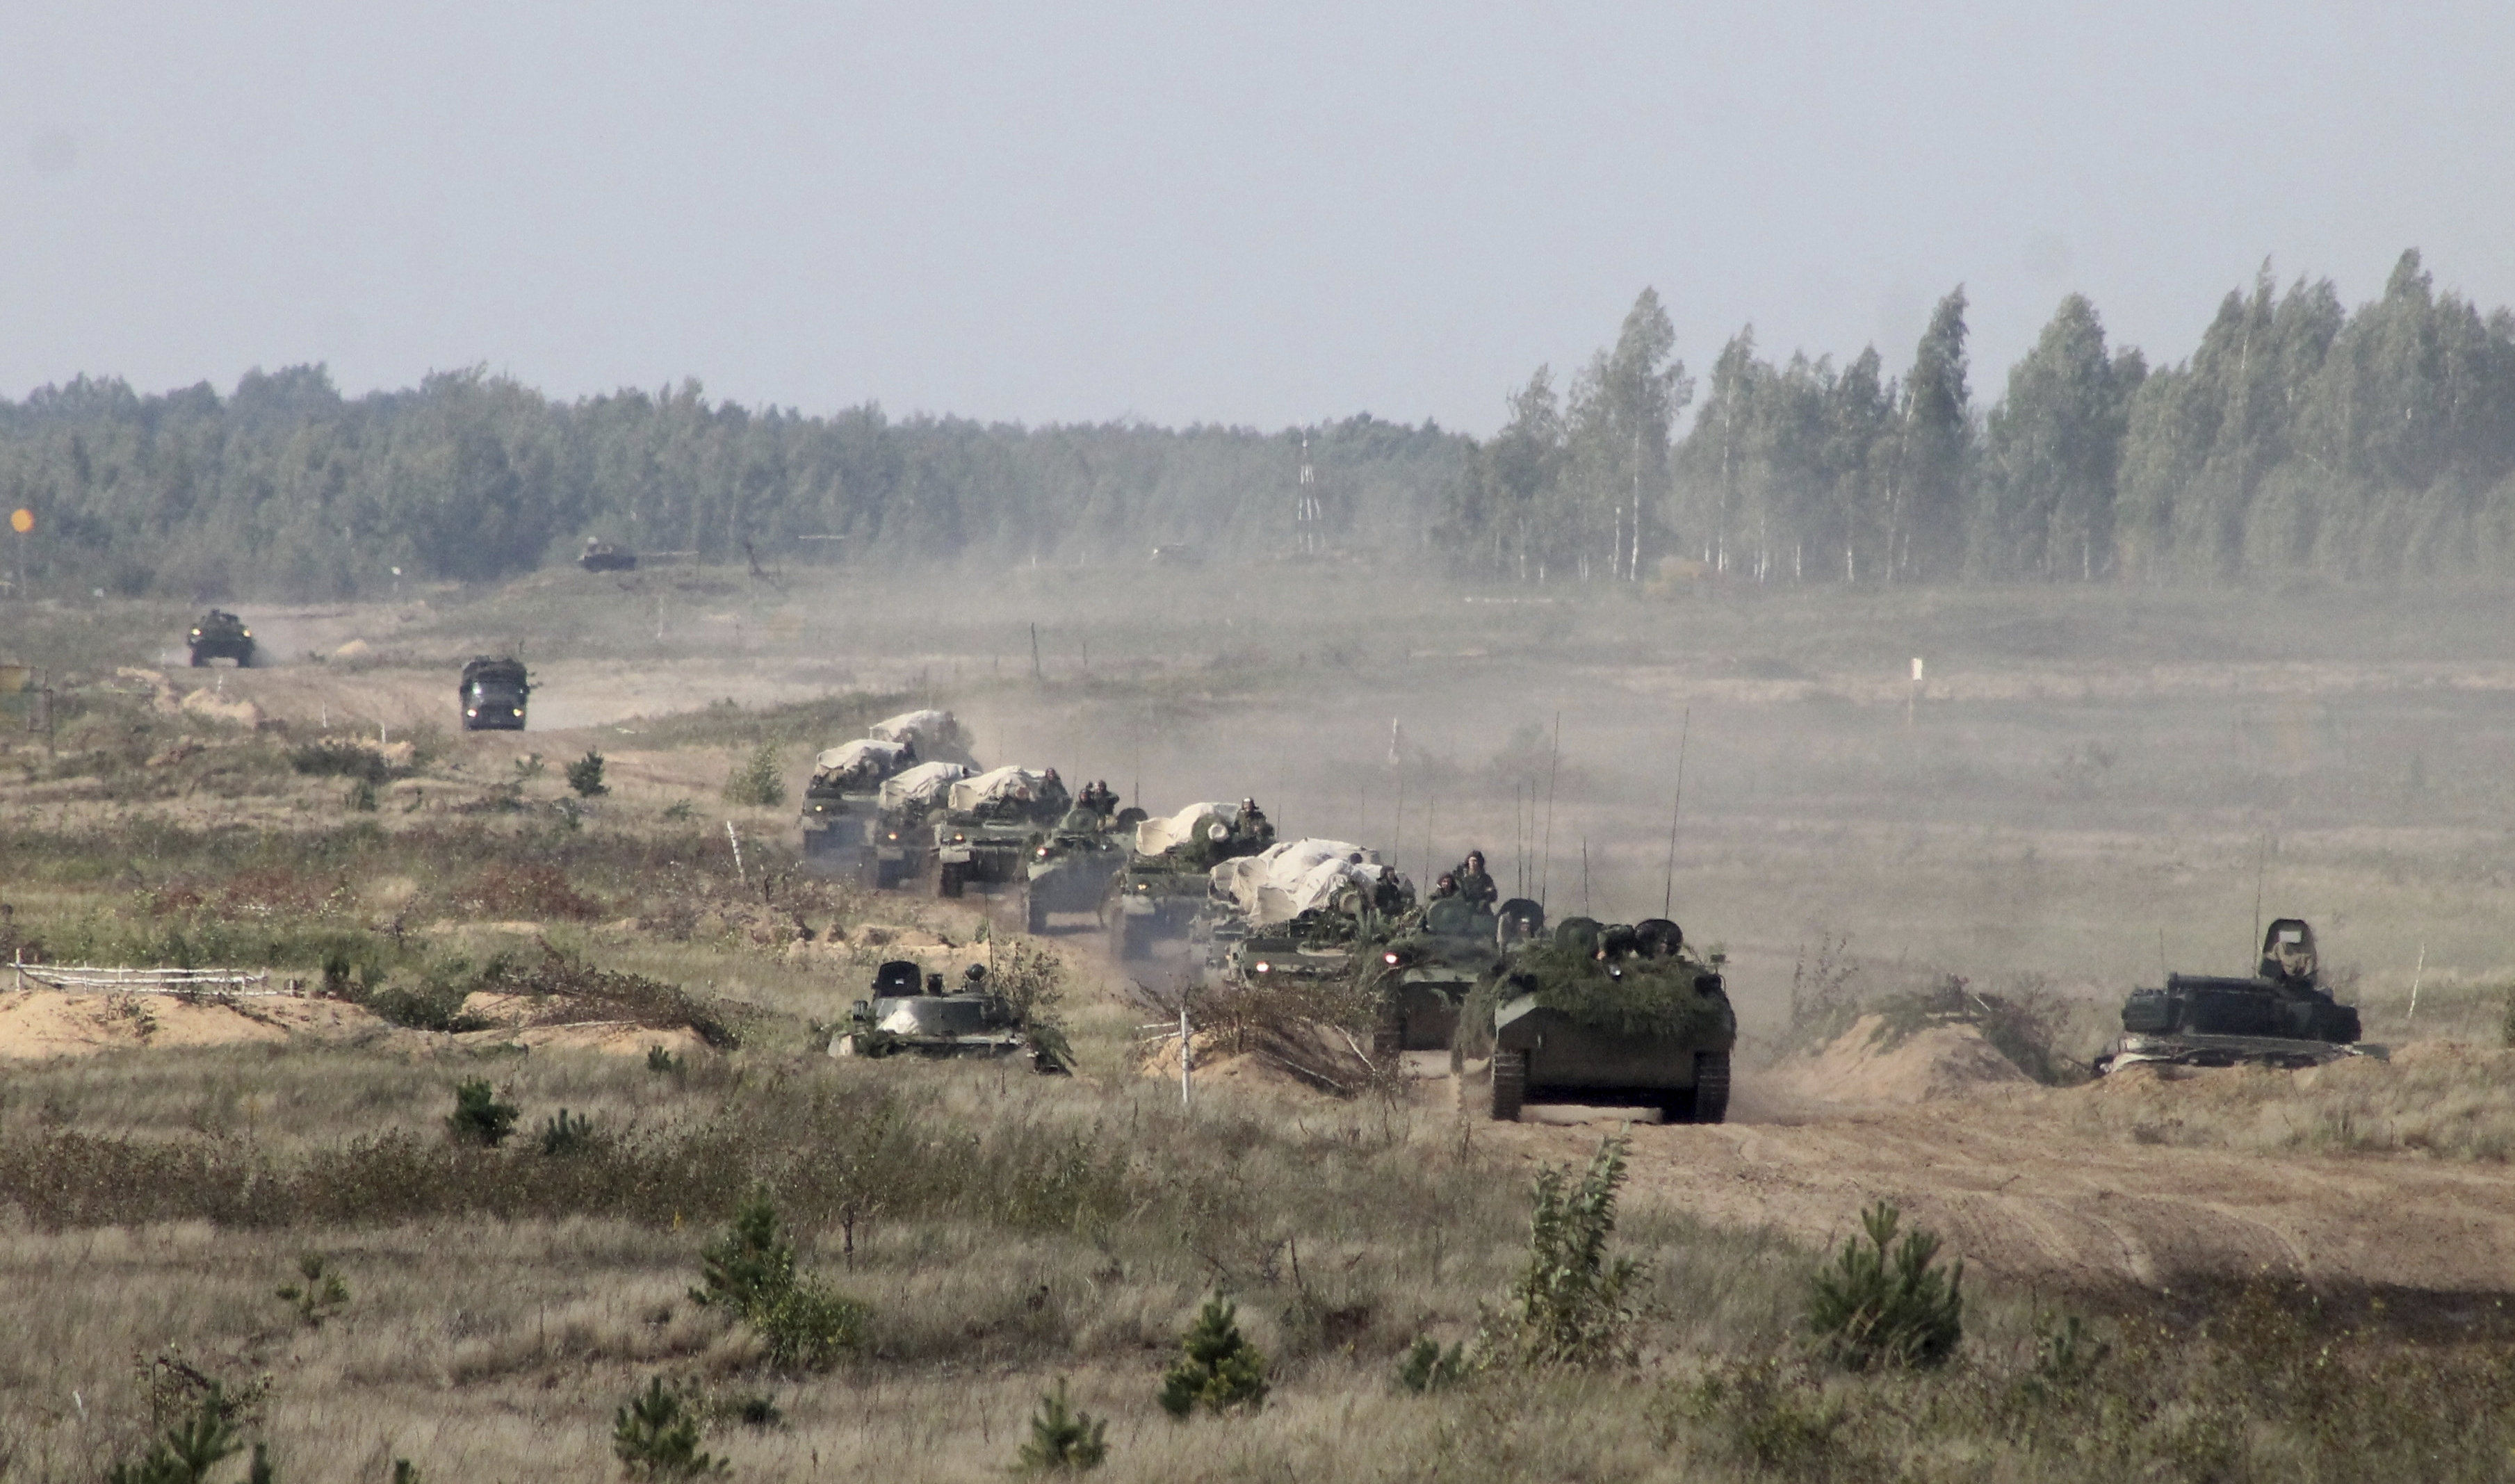 A military convoy arrives to a training ground at an undisclosed location in Belarus on Sept. 11, 2017. NATO and neighboring countries have expressed concern over the war games. (Vayar Military Agency photo via AP)